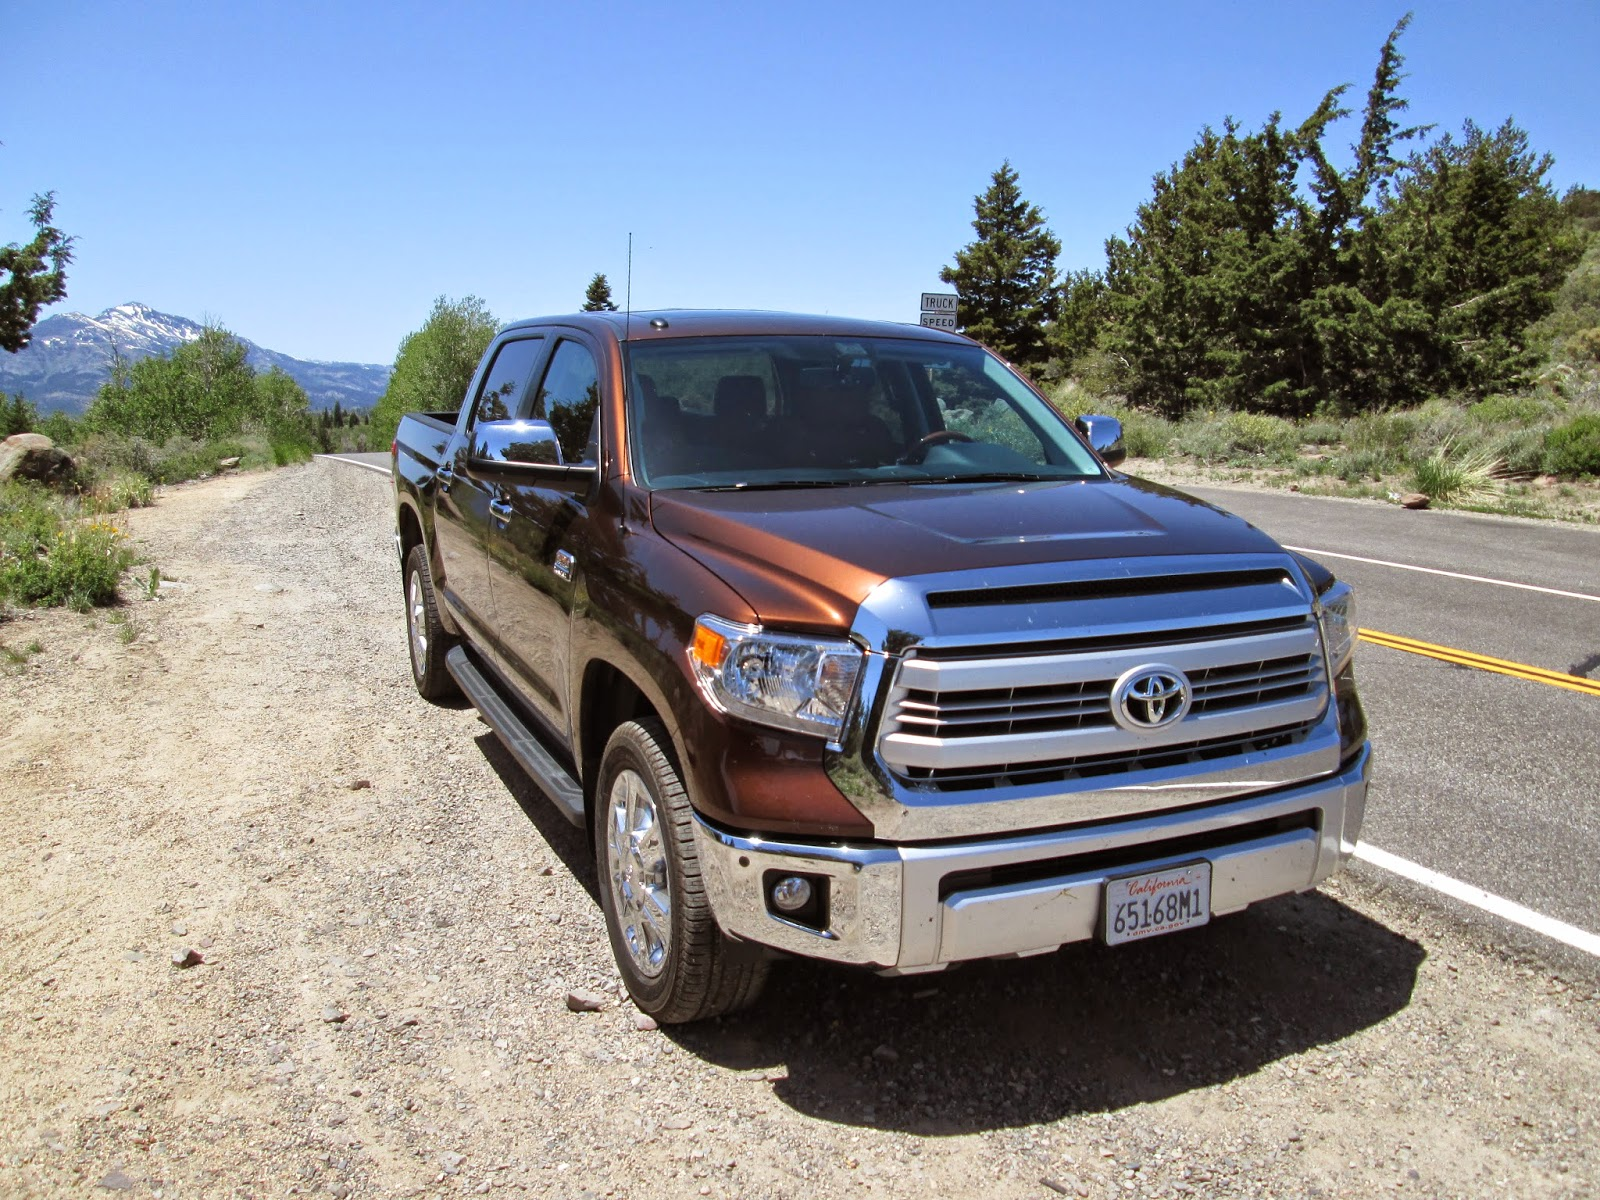 Where The 2014 Toyota Tundra 1794 Edition Is A Big Hit